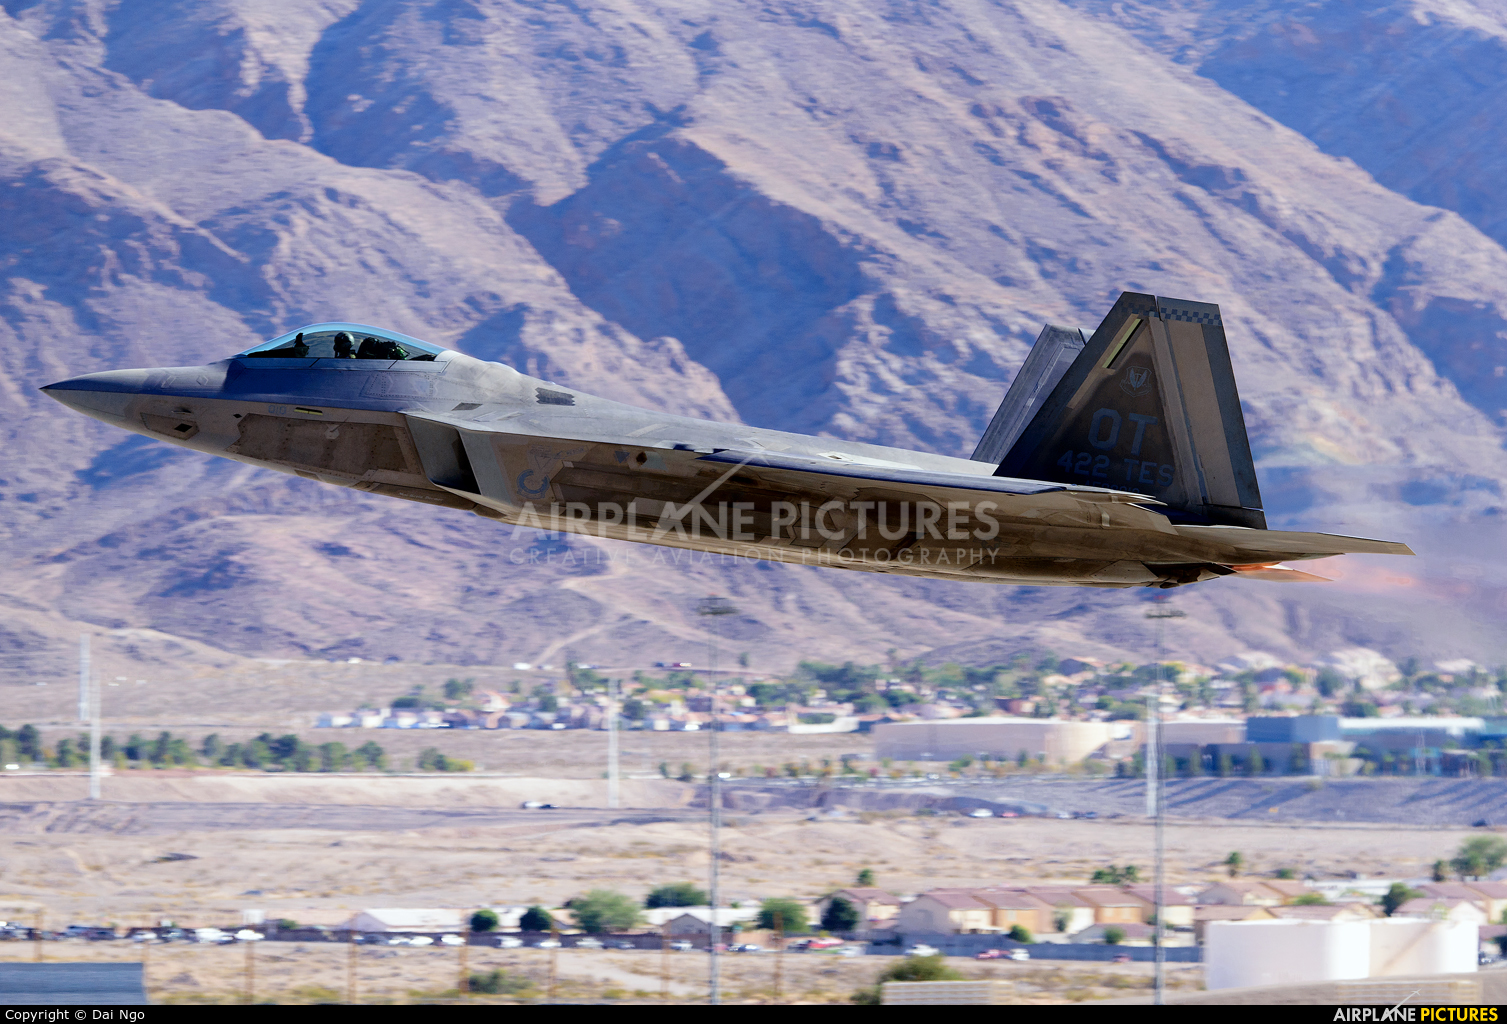 USA - Air Force 99-4010 aircraft at Nellis AFB